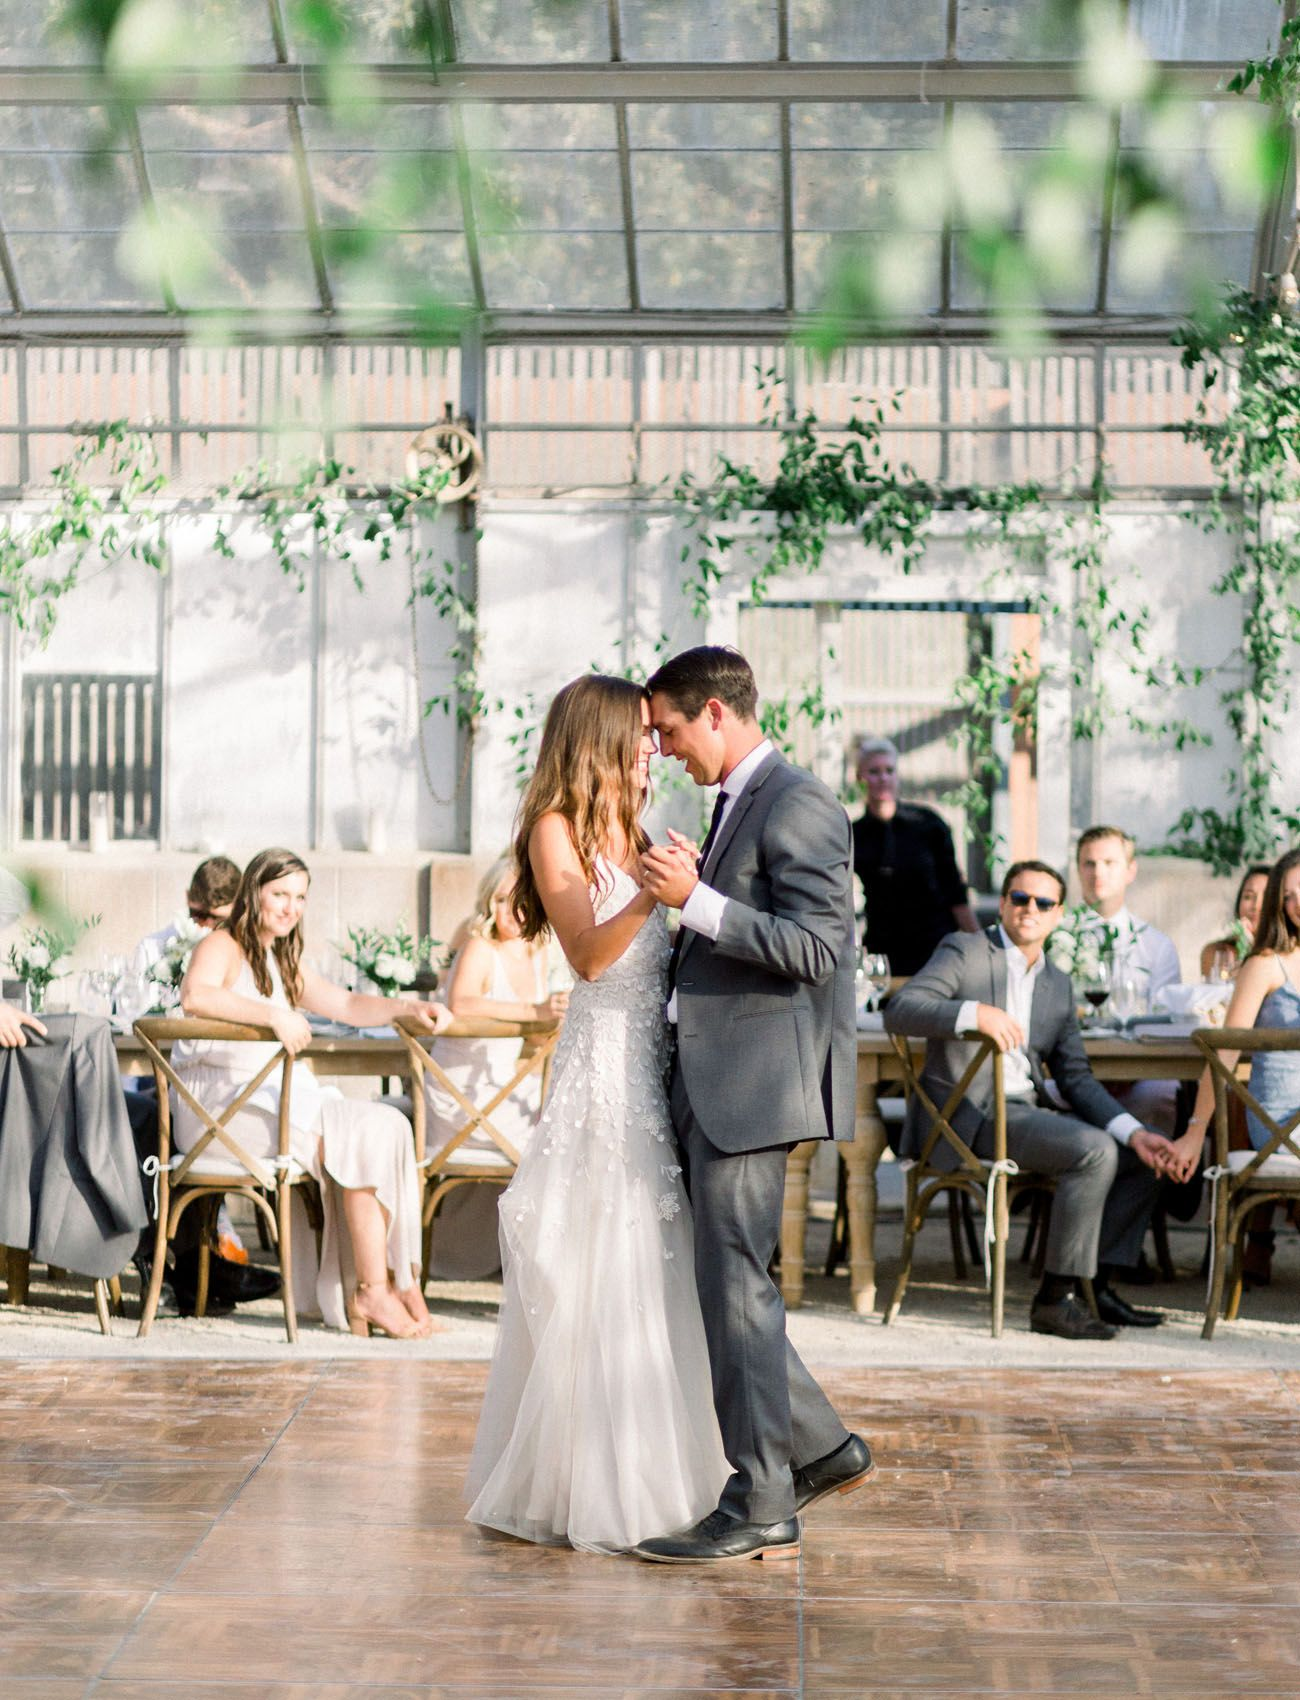 Wedding dress with black shoes  It Was All About Modern Whimsy at this Greenhouse Wedding in Goleta